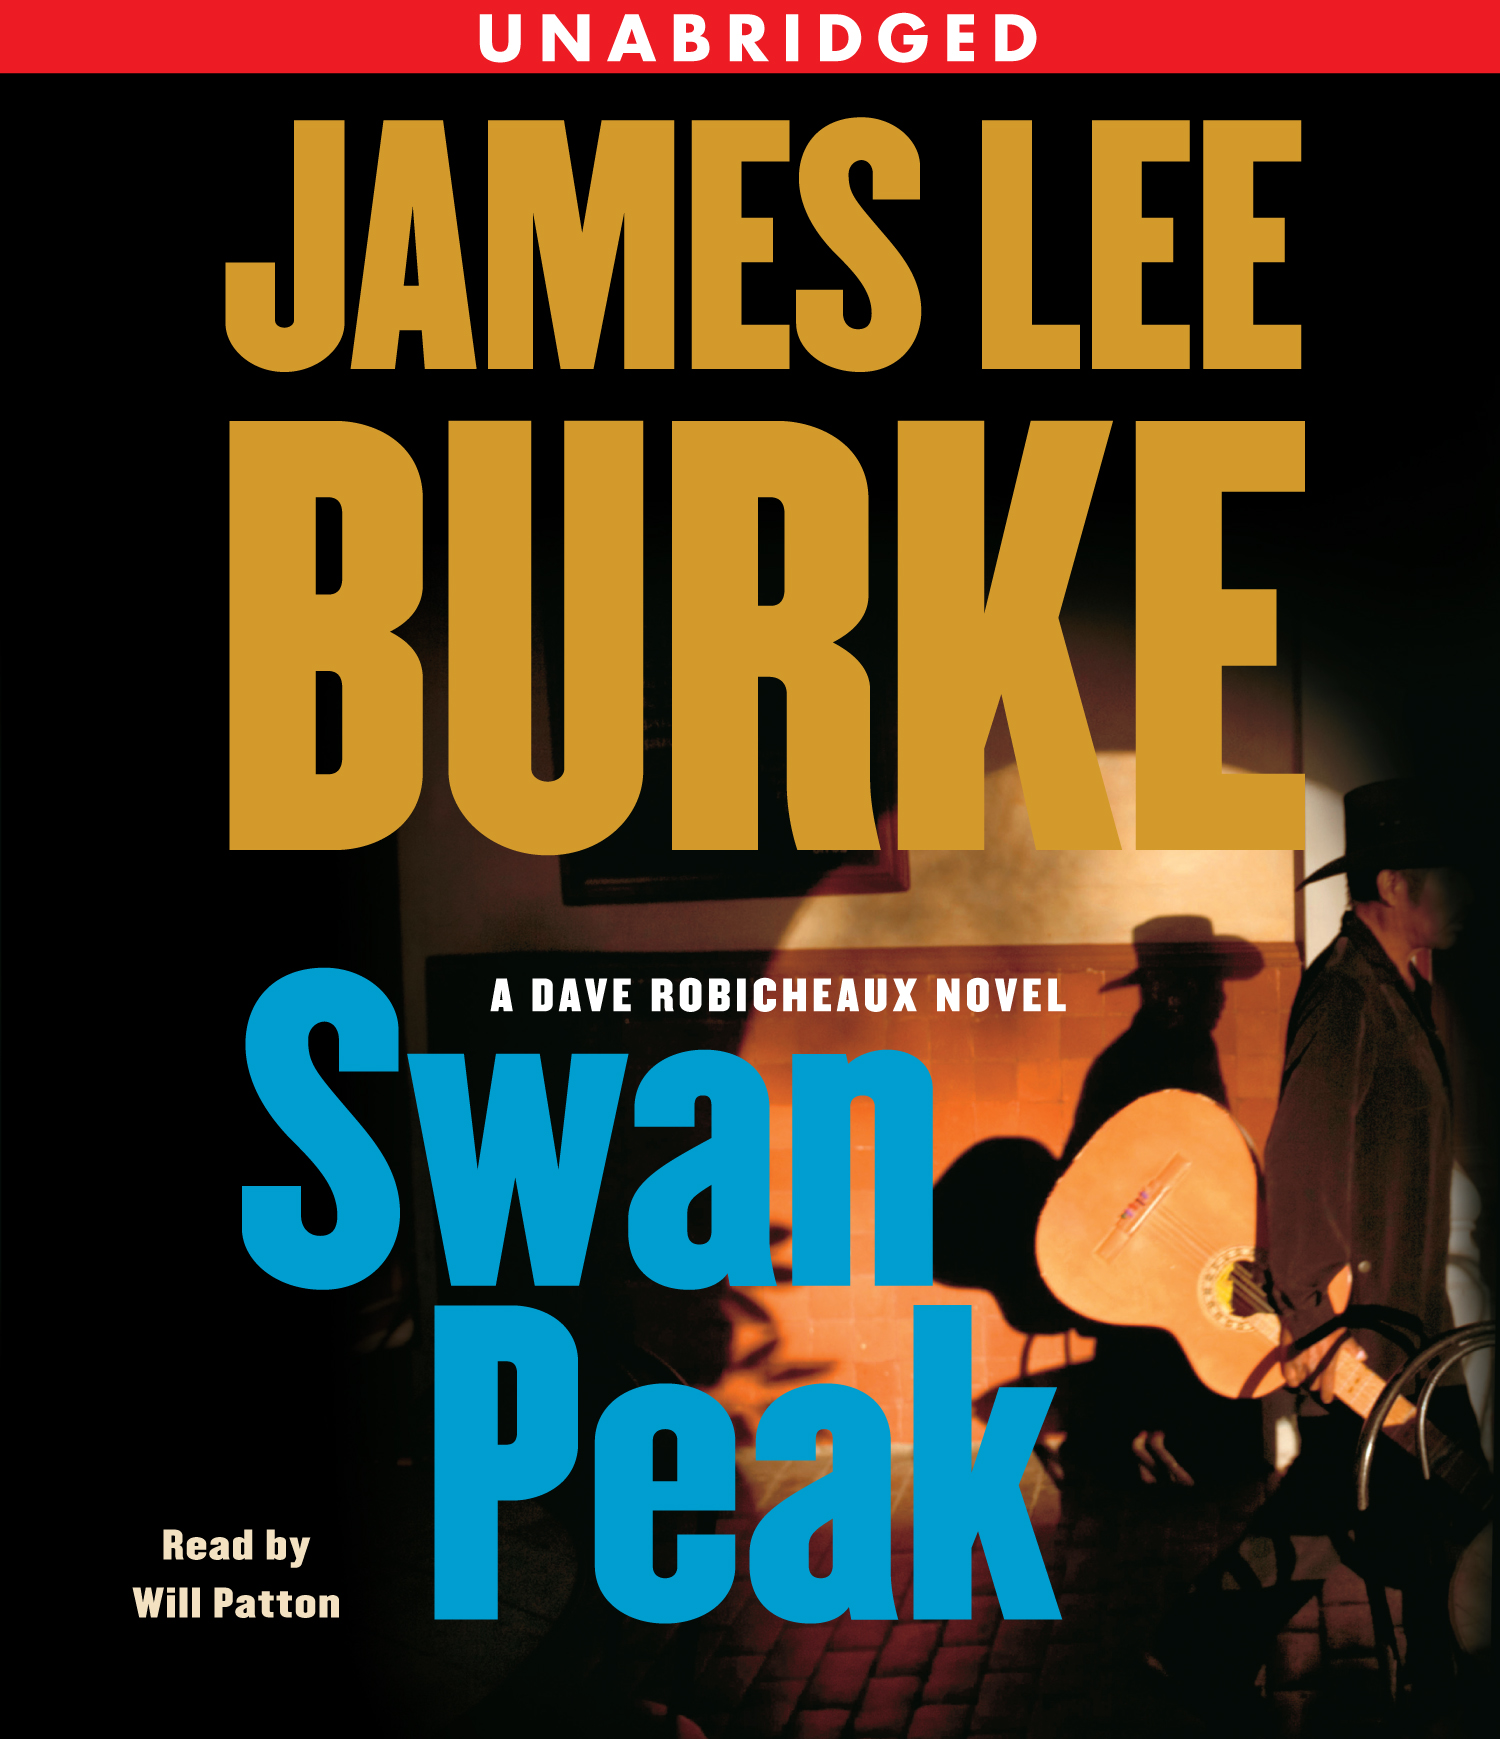 Book Cover Image (jpg): Swan Peak